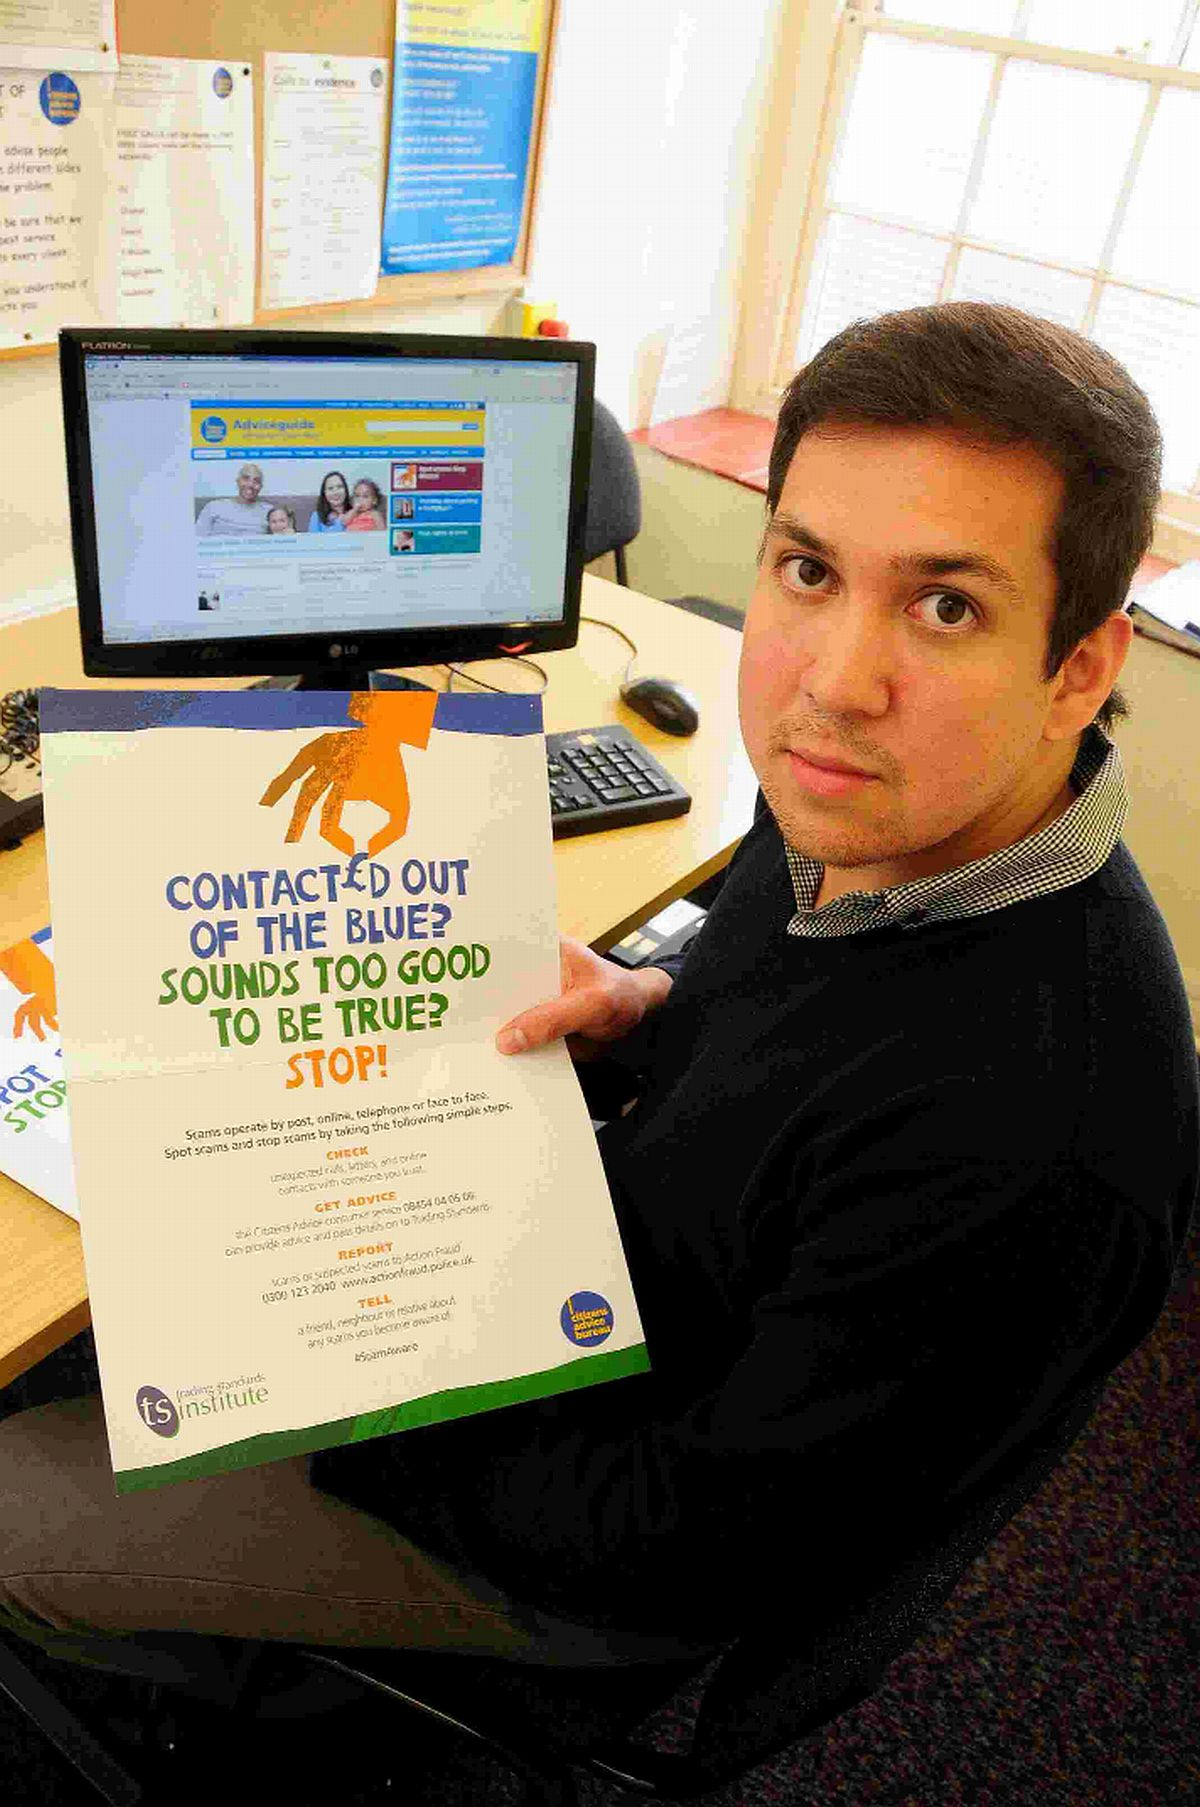 Shaun Powell at the Bridport Citizens Advice Bureau warning people of email scams